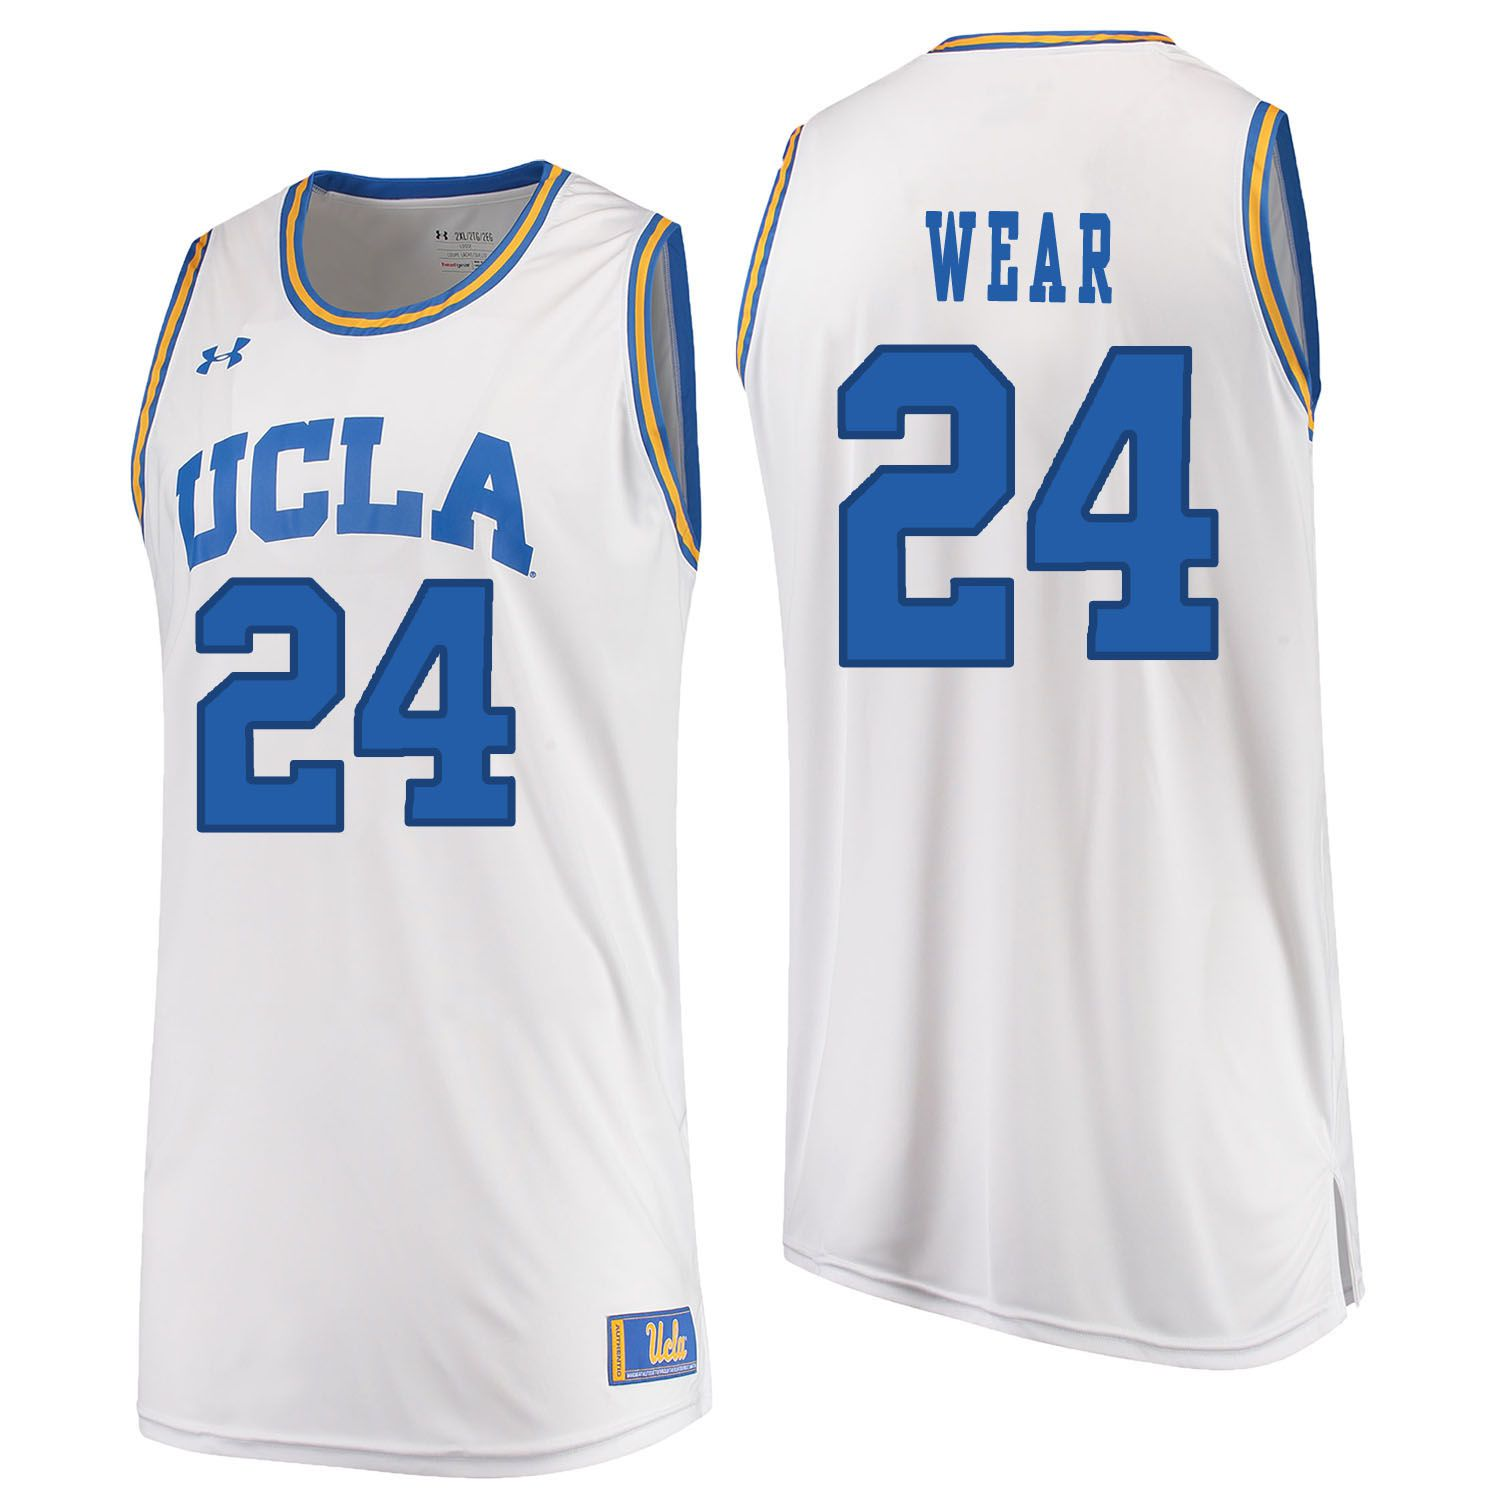 Men UCLA UA 24 Wear White Customized NCAA Jerseys